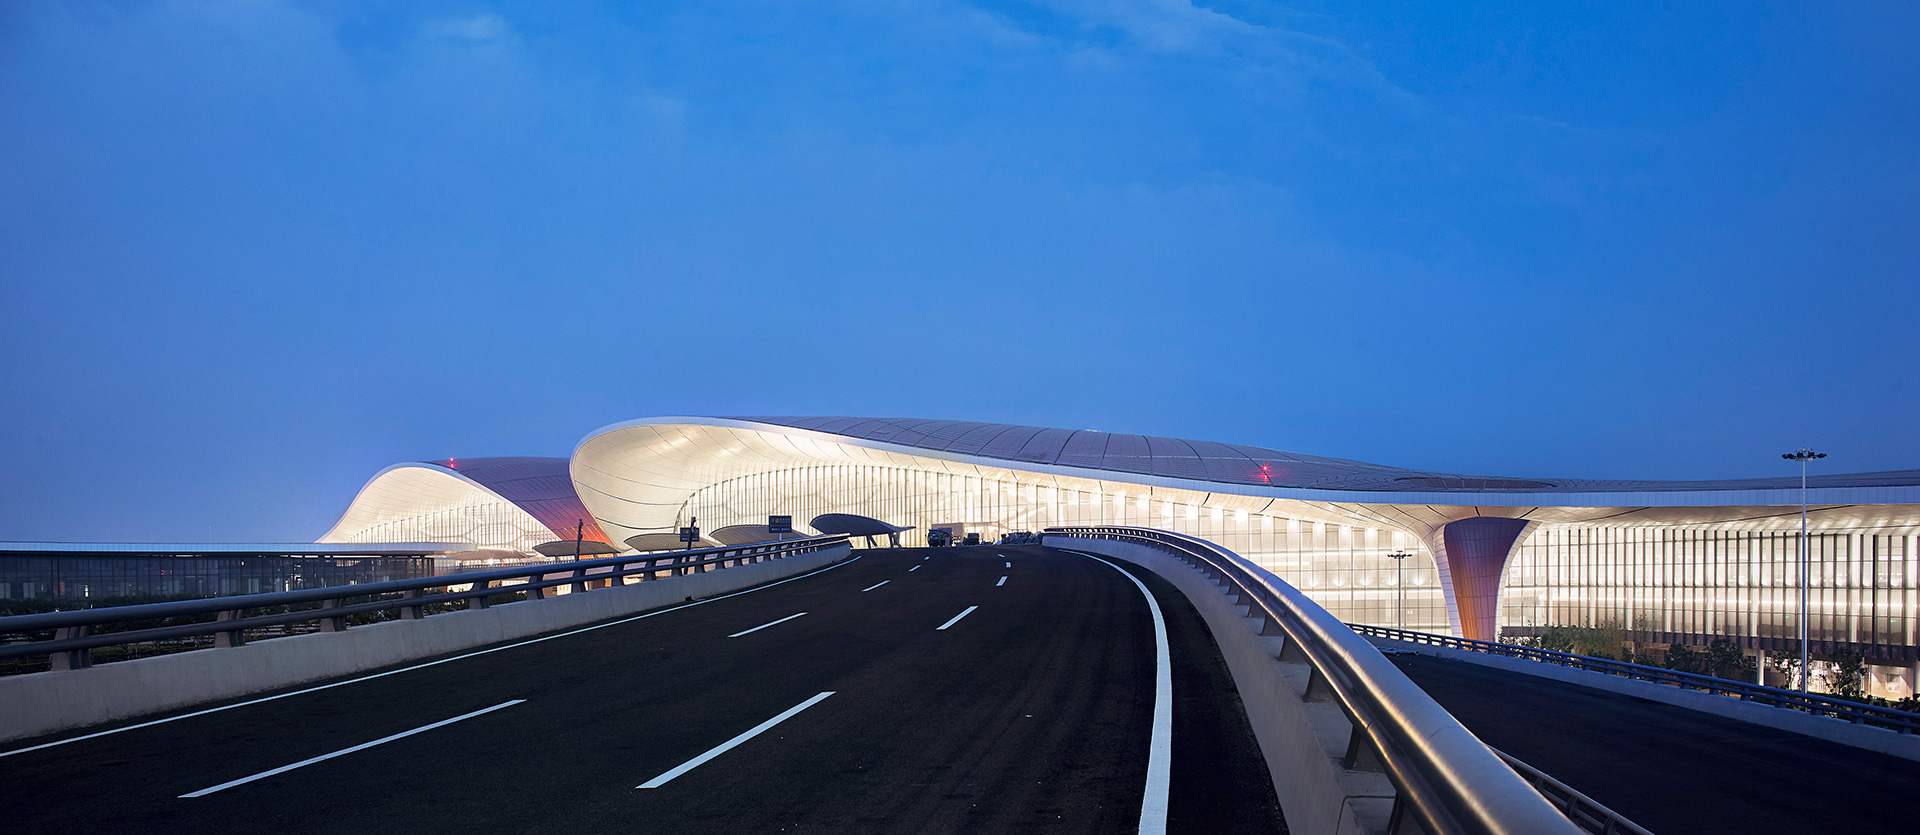 The Beijing Daxing International Airport designed by Zaha Hadid Architects | Beijing Daxing International Airport | Zaha Hadid Architects | STIRworld